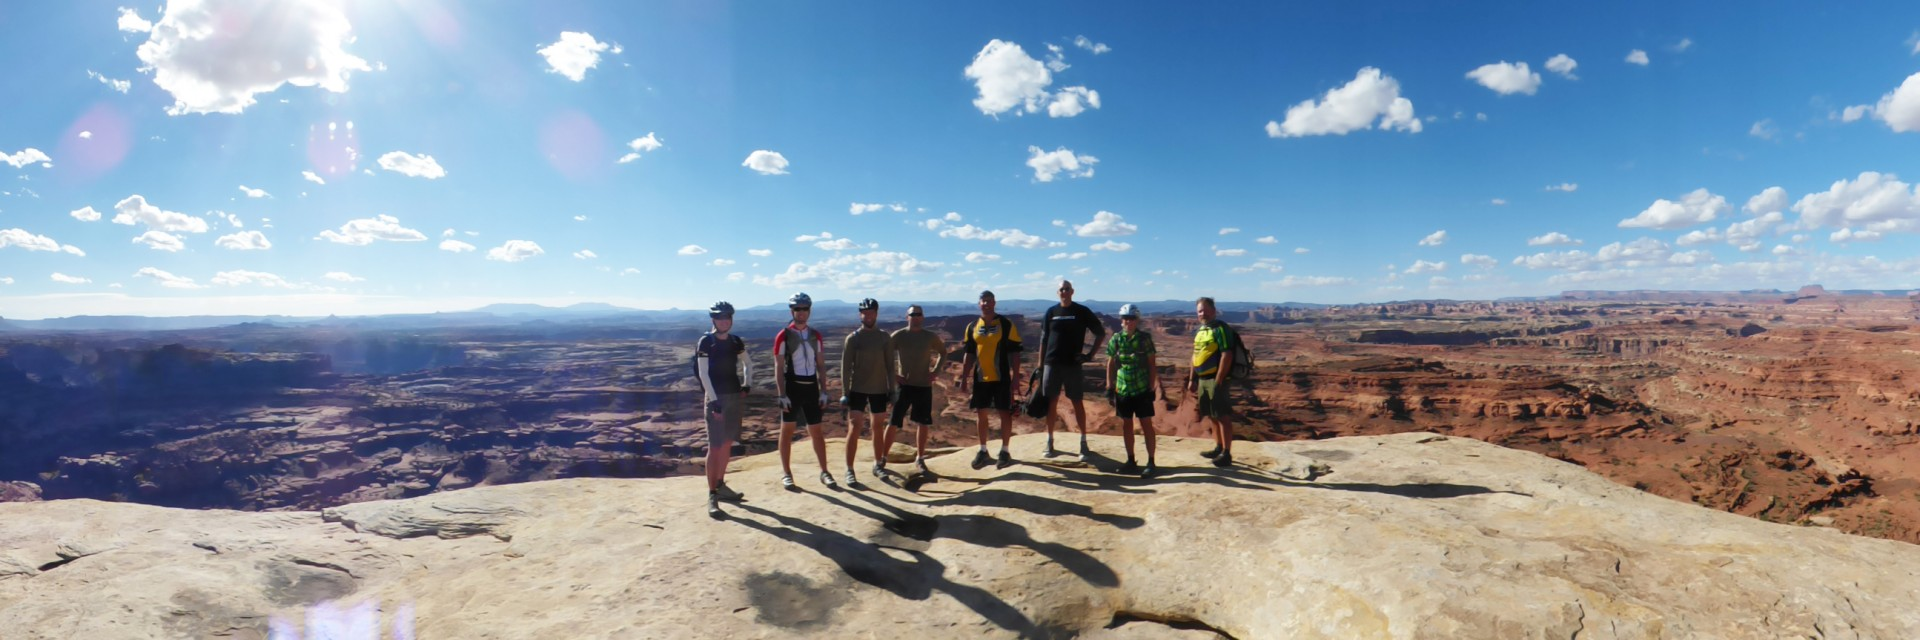 A group of mountain bike riders pose with their guide at White Crack campground on the White Rim Trail guided tour